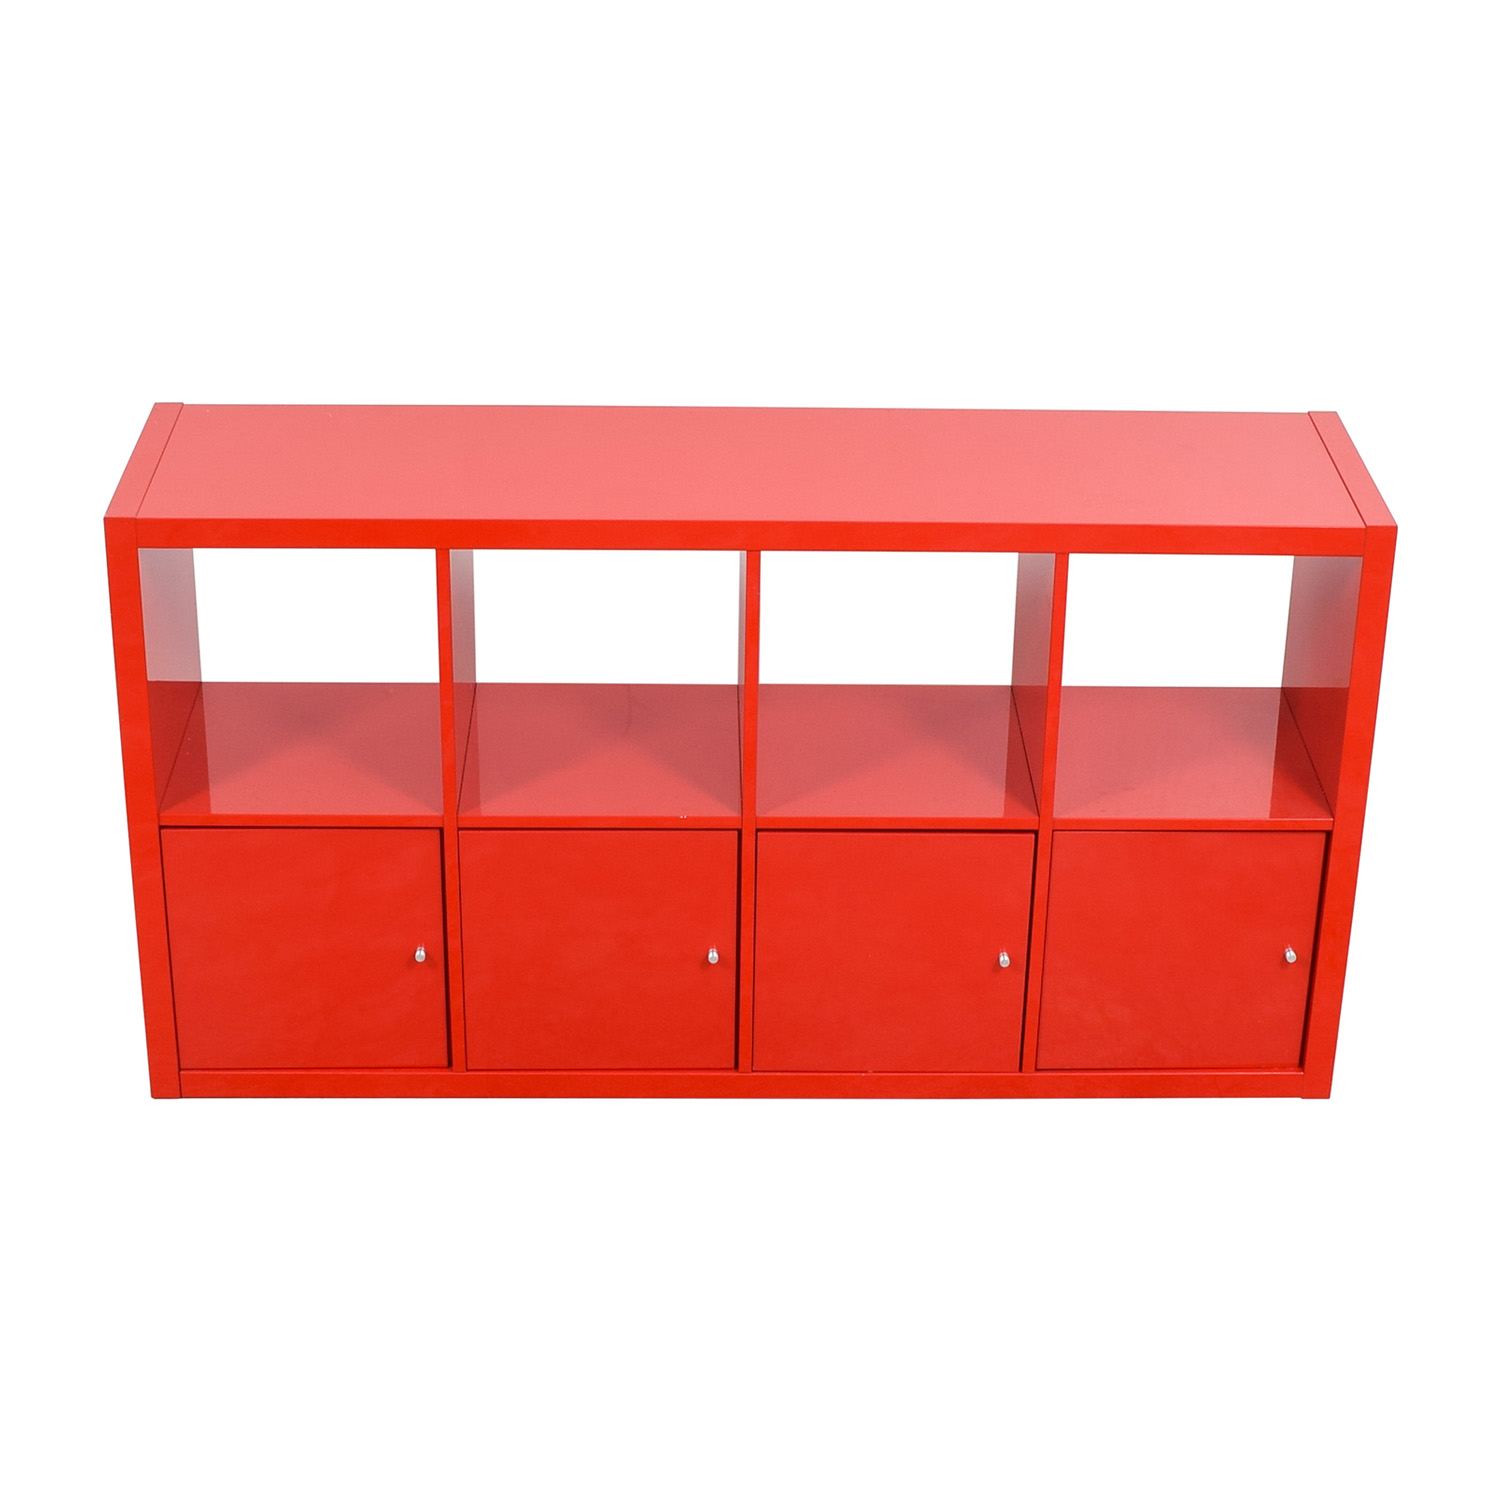 IKEA IKEA Red Shelving with Storage Cabinets used